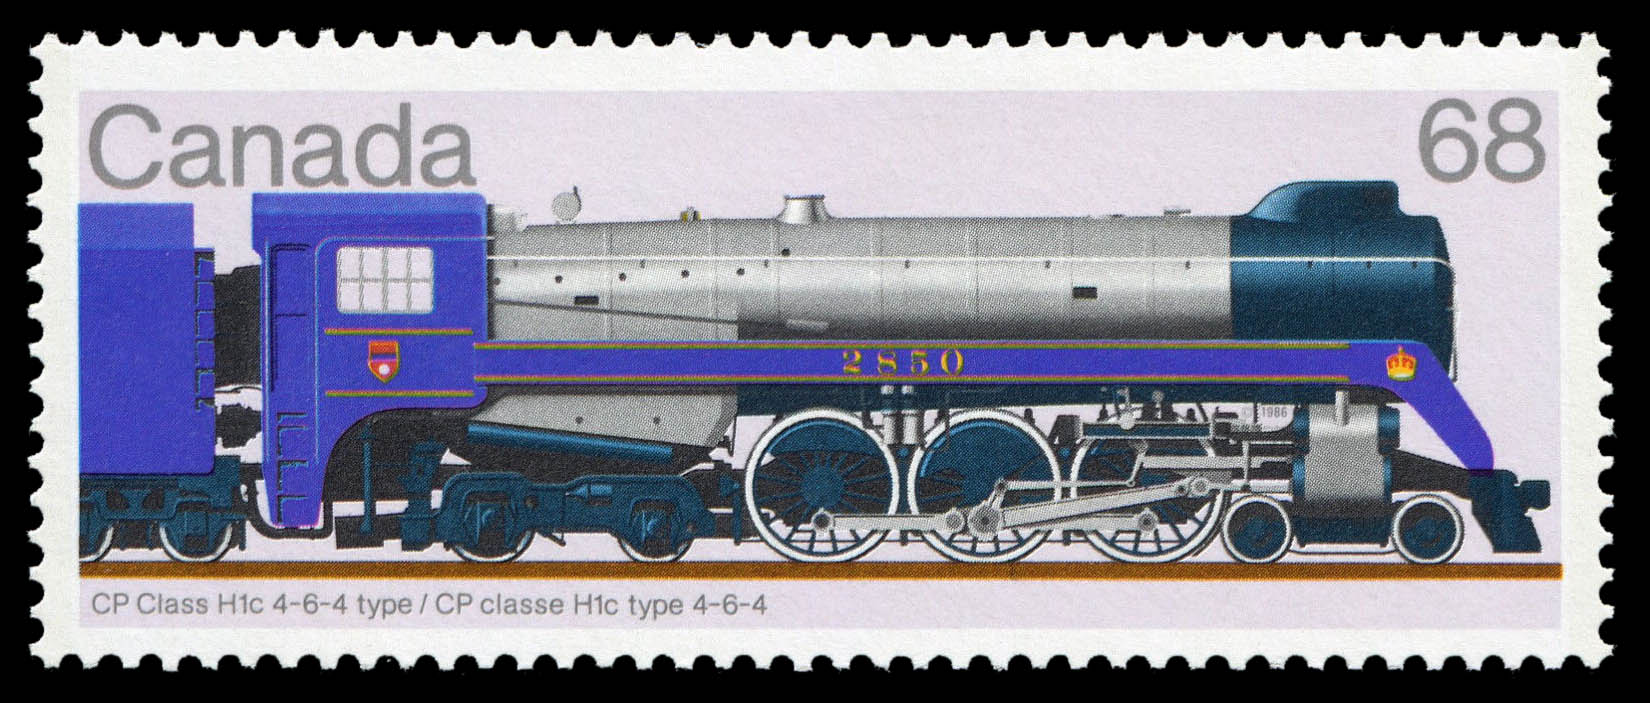 CP Class H1c 4-6-4 Type Canada Postage Stamp